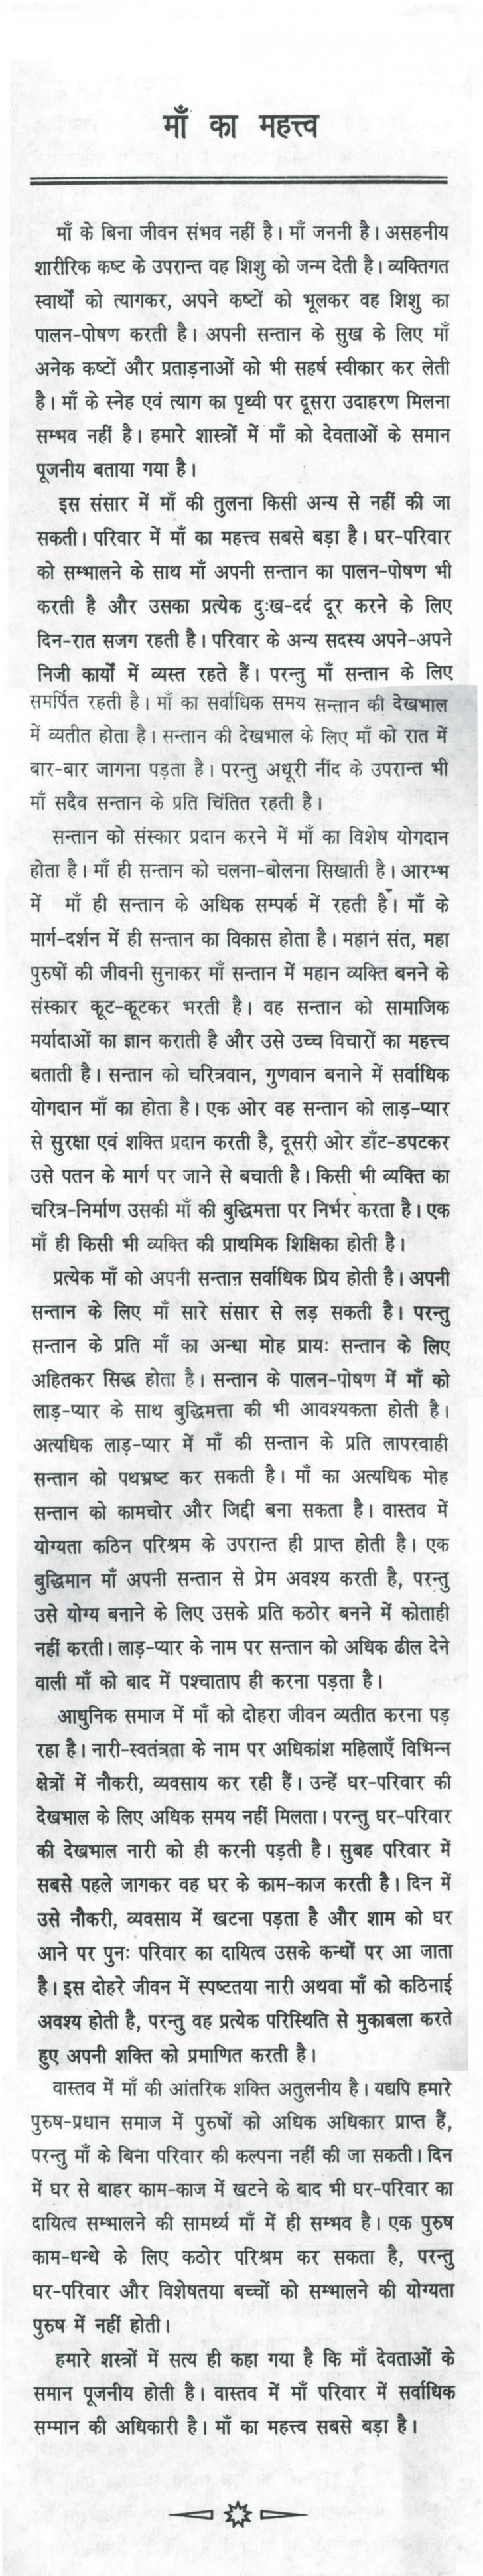 018 My Friend Essay About Helping Short Writing Books Are Best 10058 Th On In Hindi English Teacher Is Mother For Class Example 1048x5588 Excellent A Trouble Narrative 728